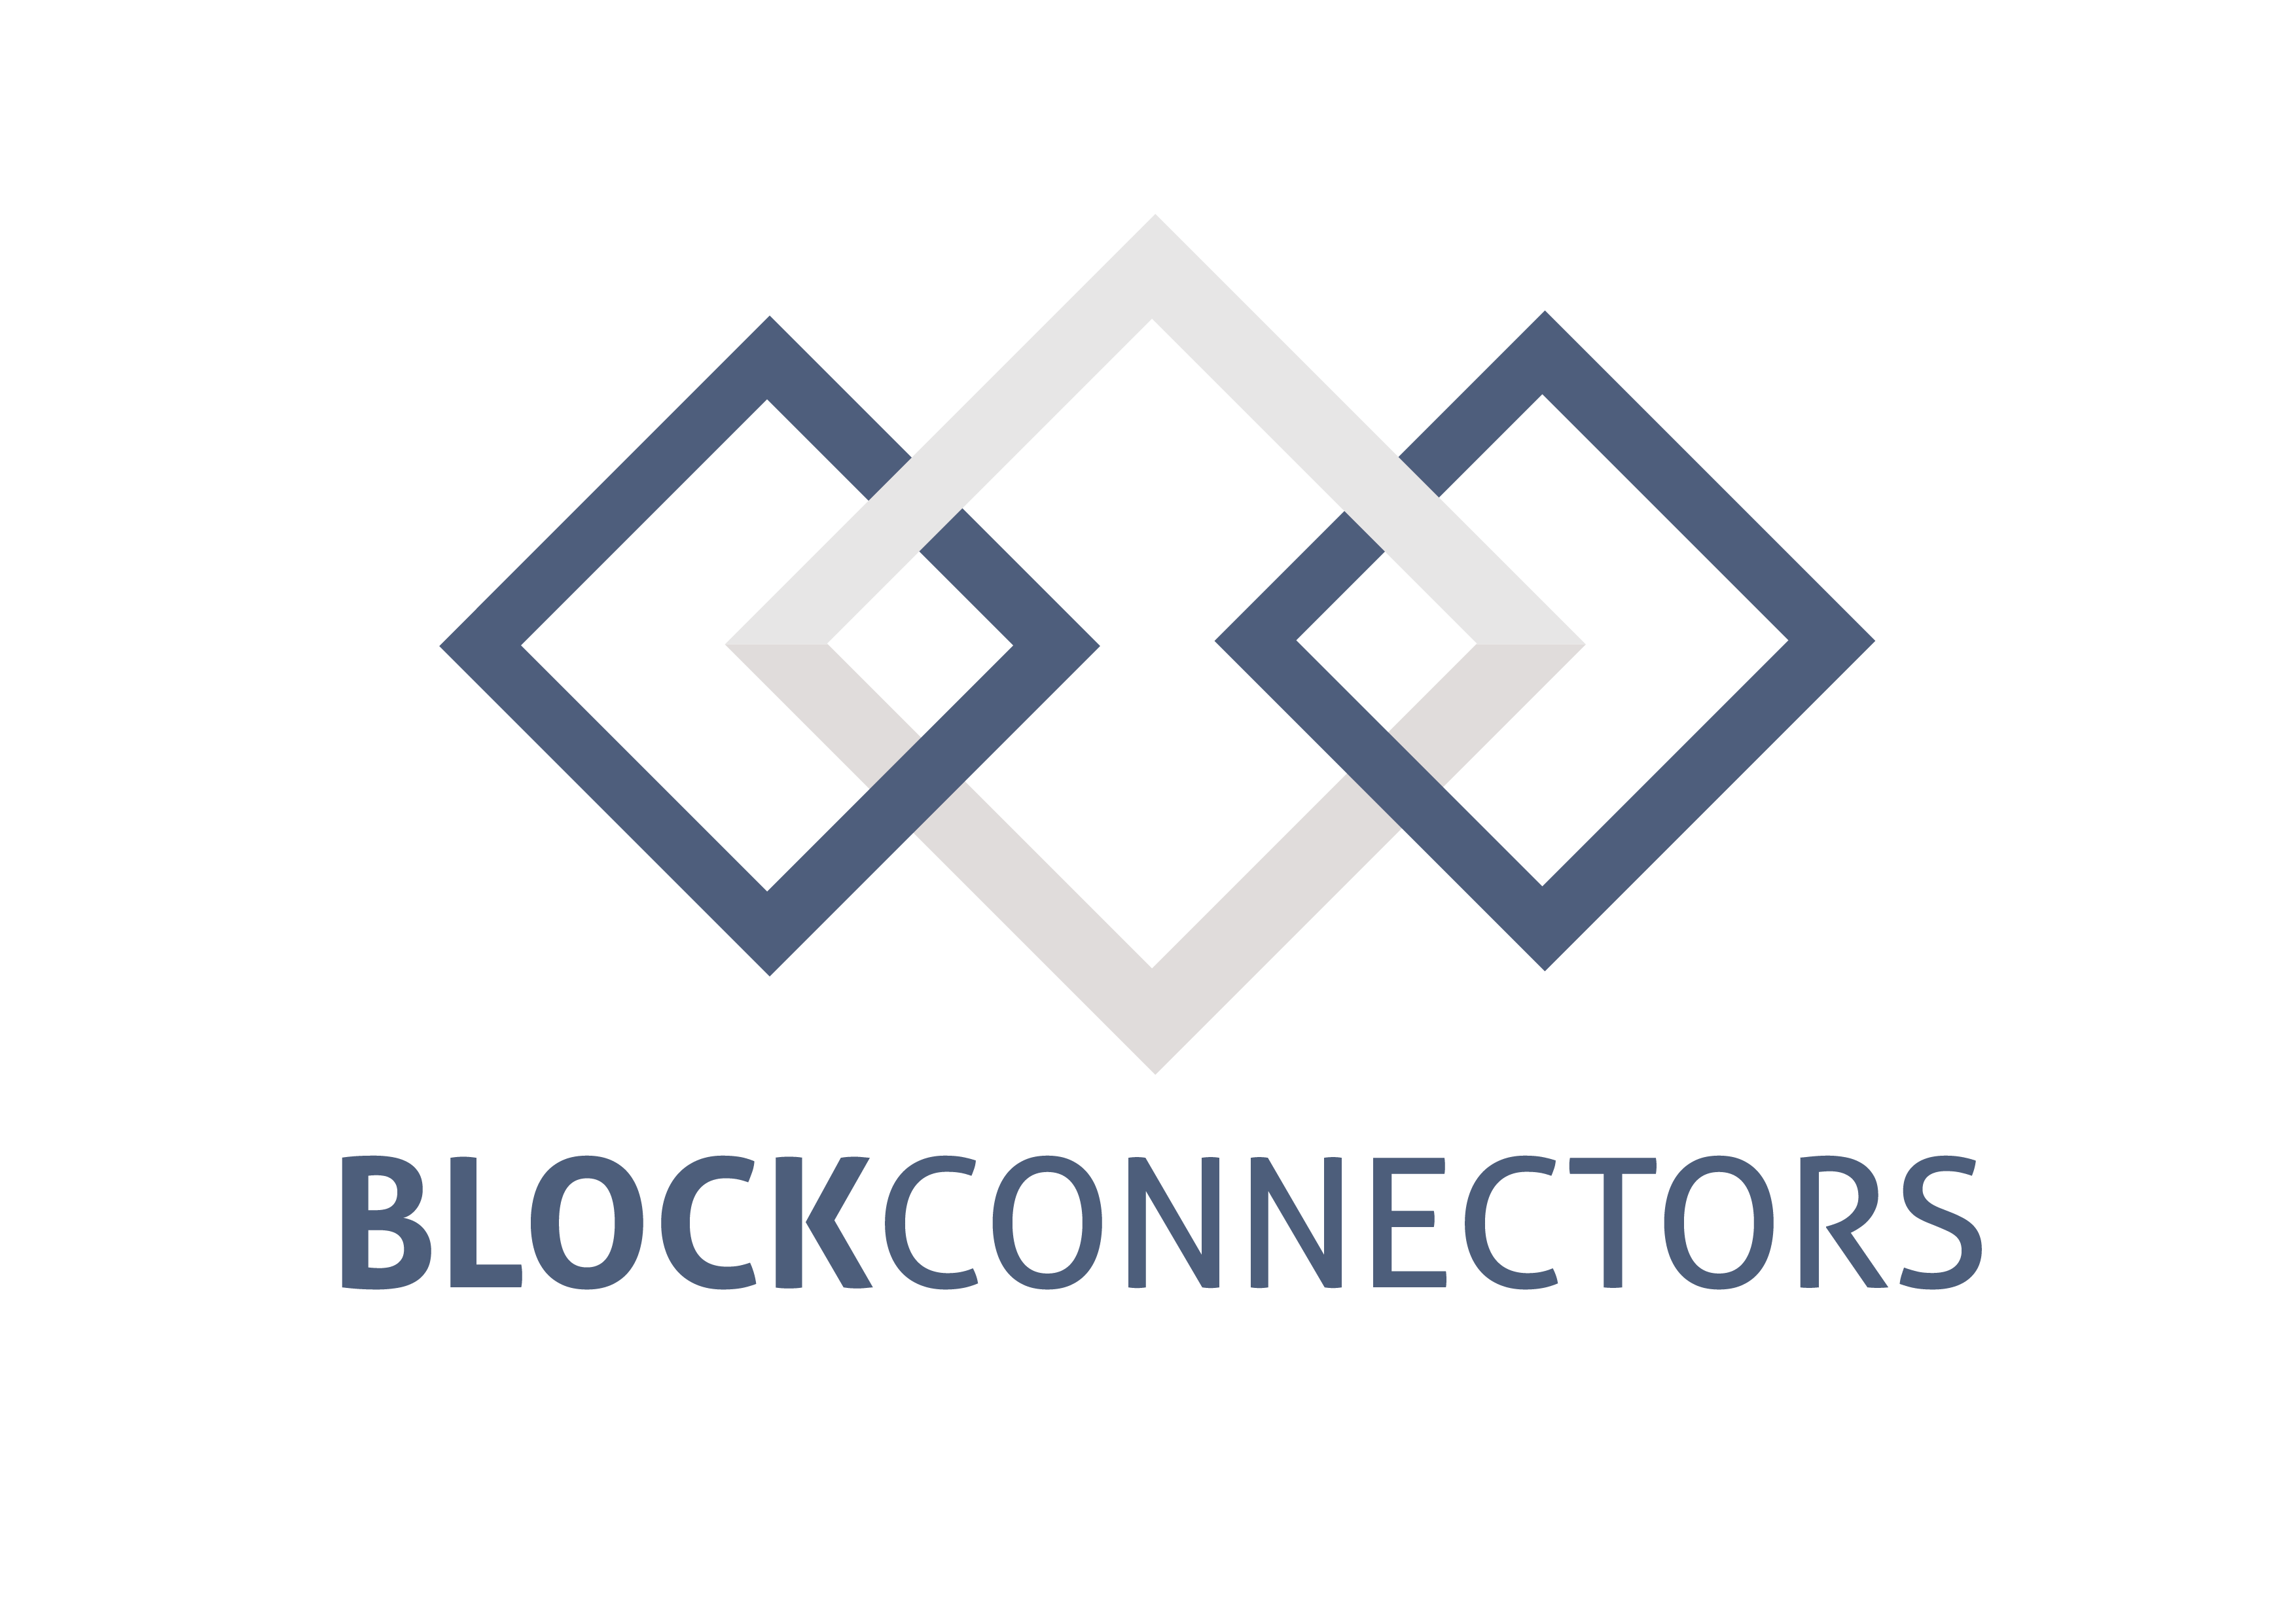 BlockConnectors